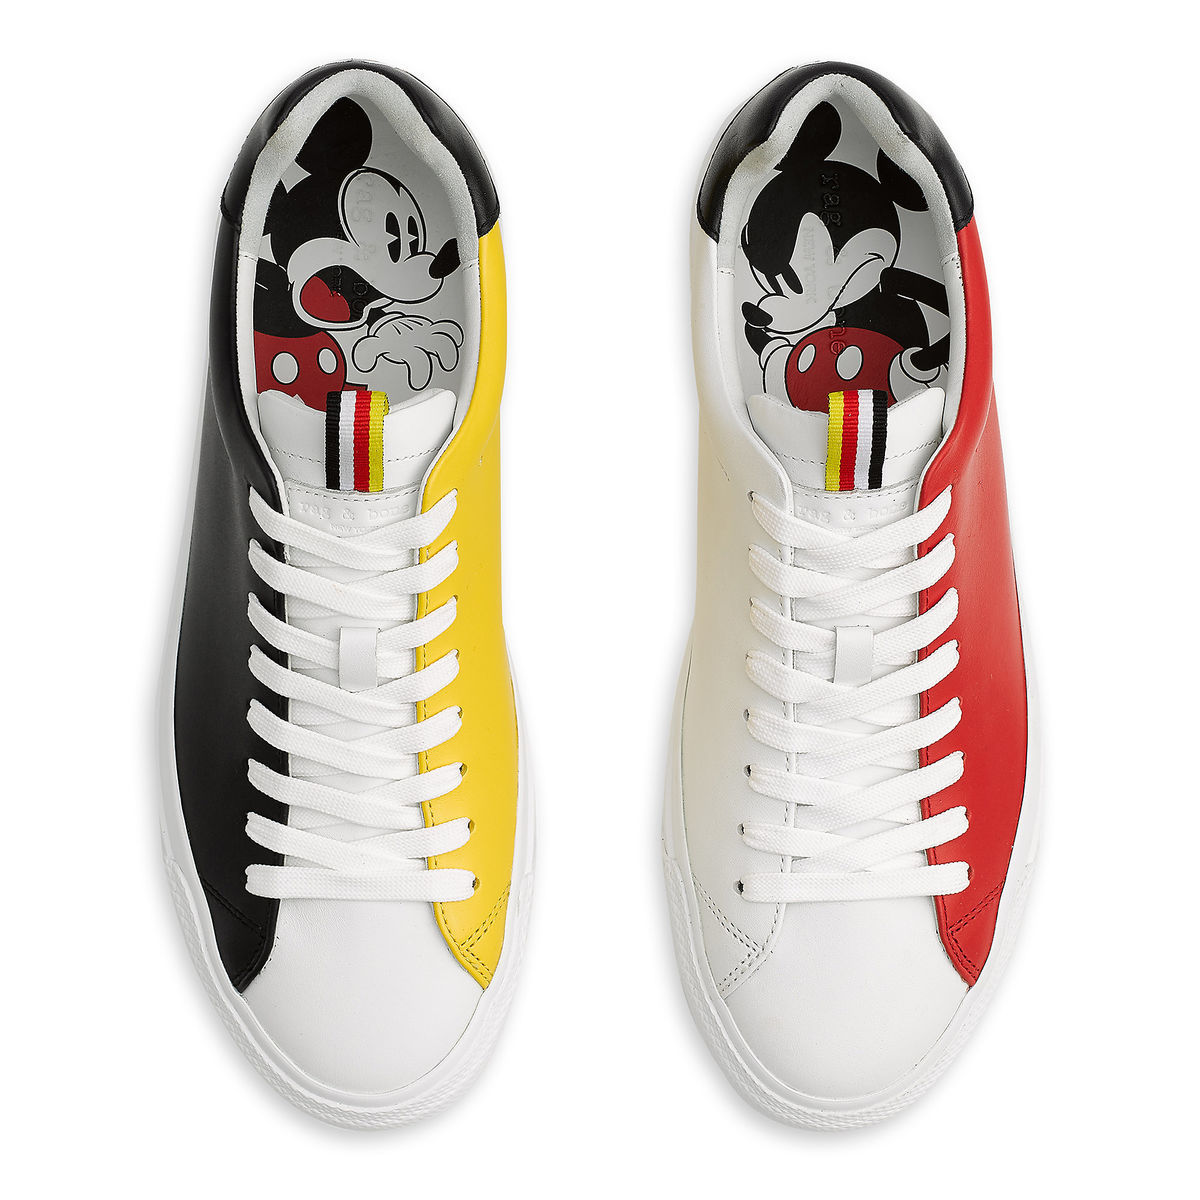 Mickey Mouse Shoes to Celebrate His